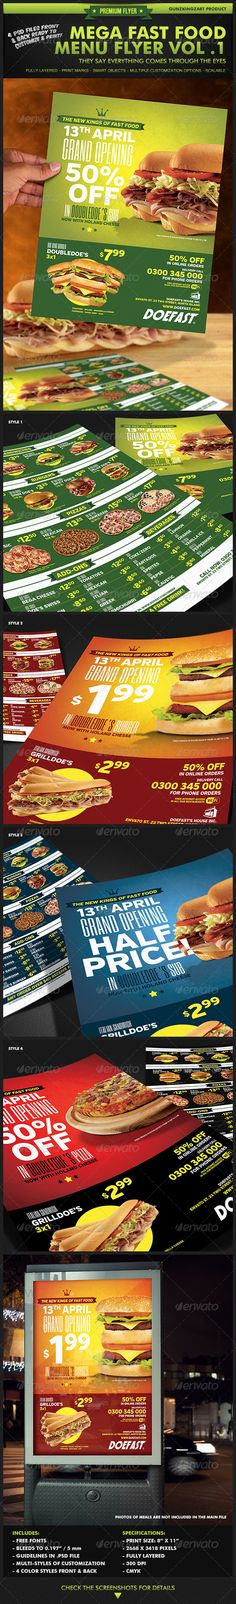 Buy Mega Fast Food Menu Flyer Vol. 1 by GunzKingzArt on GraphicRiver. This Flyer is an exclusive design by Iván Díaz of GunzKingzArt Studios to GraphicRiver community. Menu Design, Food Design, Flyer Design, Menu Flyer, Flyer Layout, Promo Pizza, Promo Flyer, Fast Food Menu, Packaging